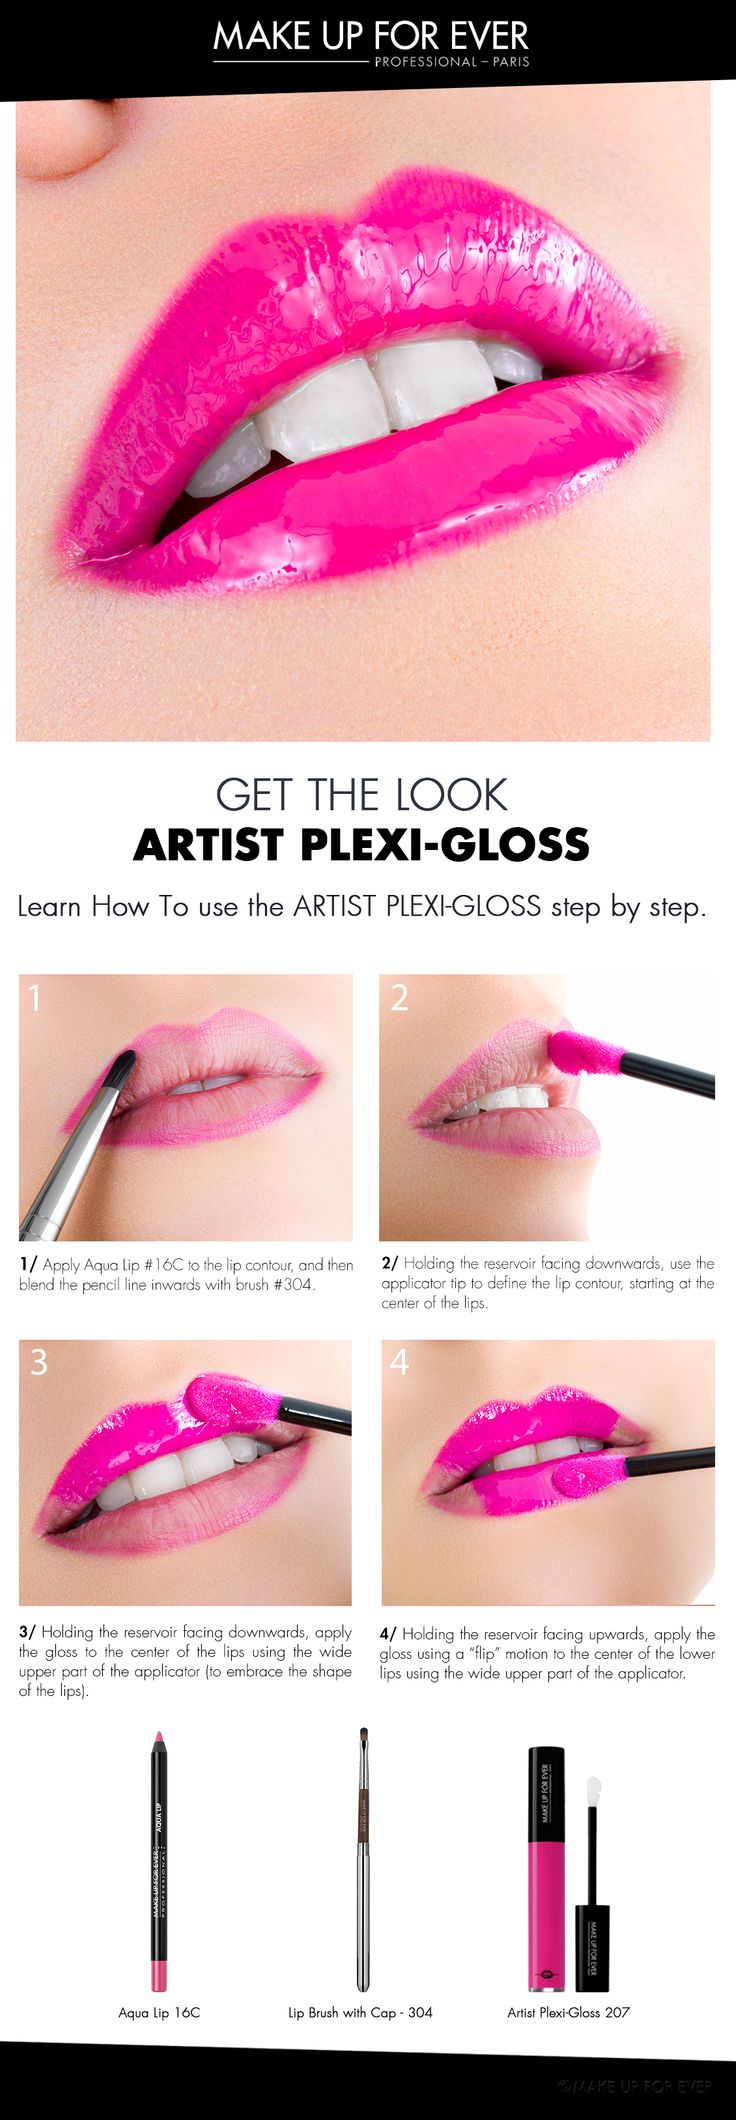 Here are the basic steps of a good Artist PLEXI-GLOSS application. Nox, opacity and brightness are possible without compromise.